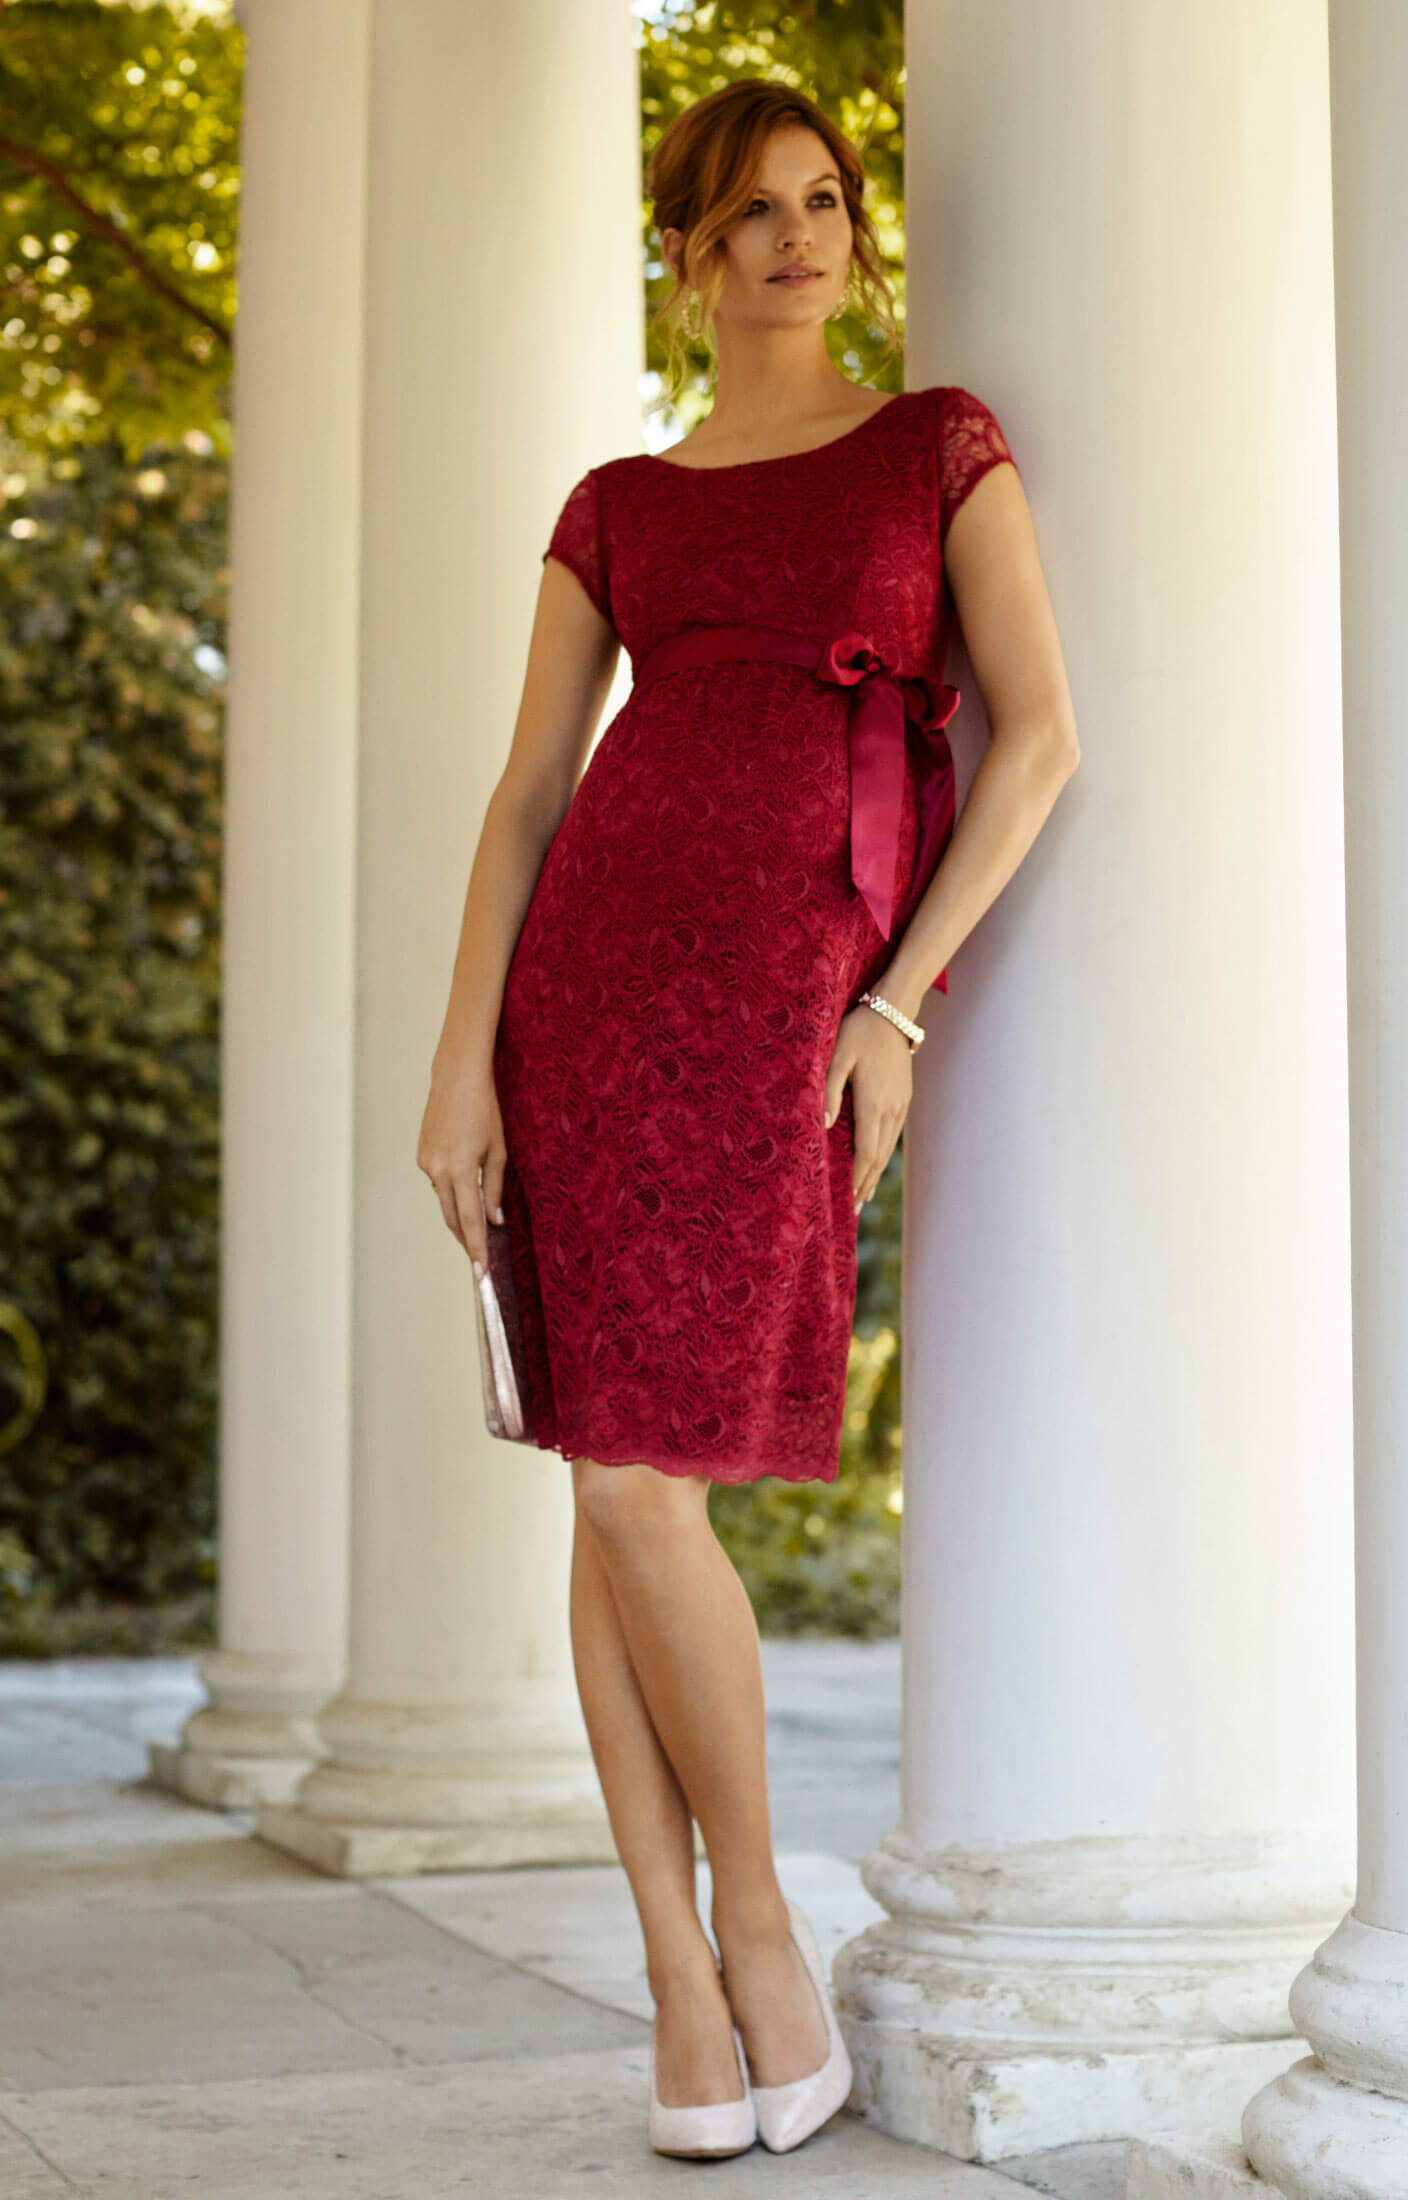 Emma maternity shift dress scarlet maternity wedding dresses emma maternity shift dress scarlet by tiffany rose ombrellifo Image collections